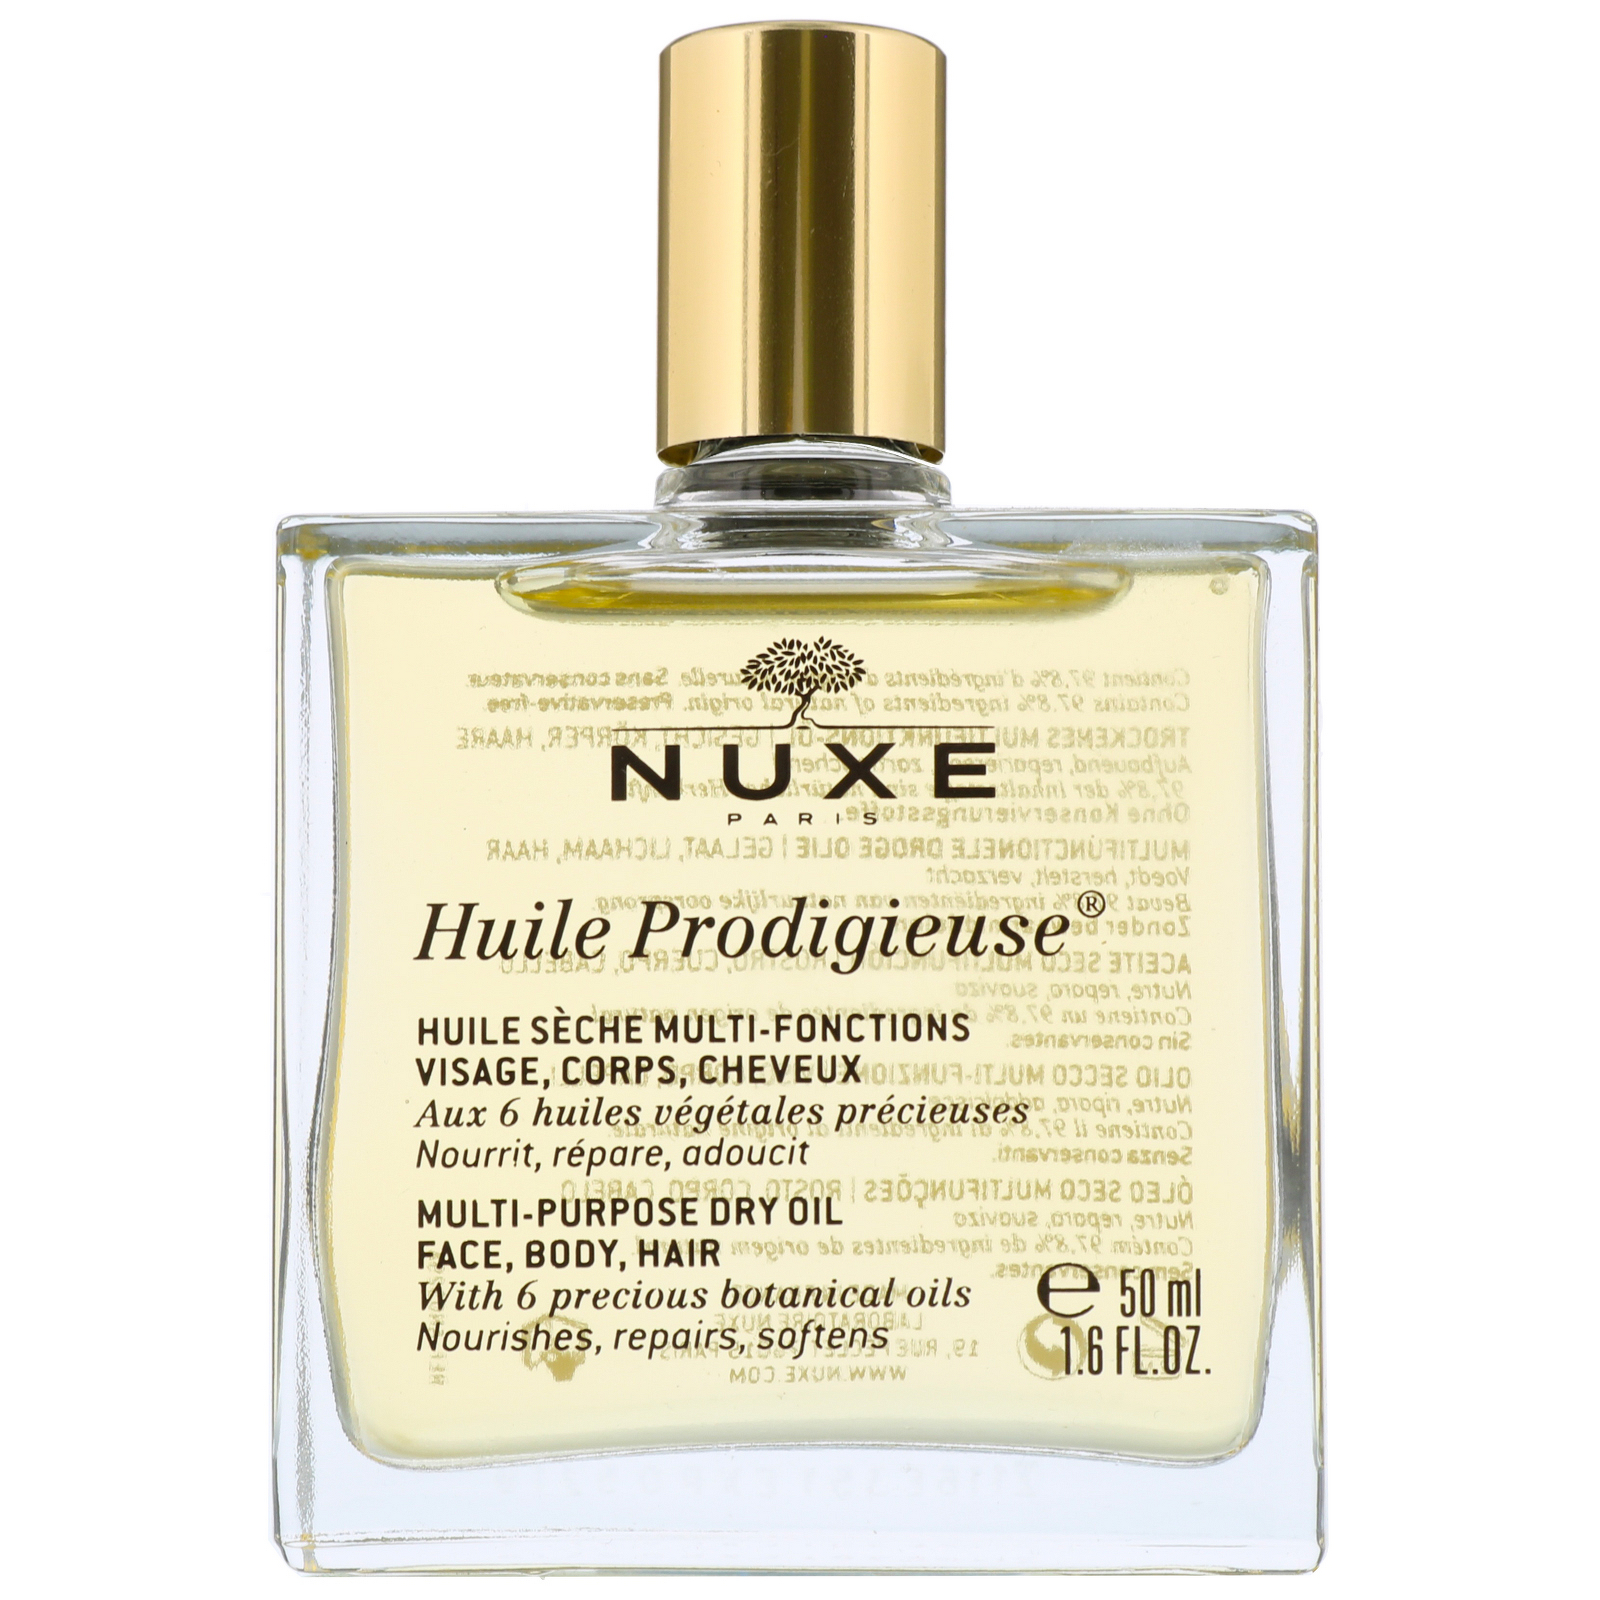 nuxe huile prodigieuse multi purpose dry oil 50ml bath body. Black Bedroom Furniture Sets. Home Design Ideas